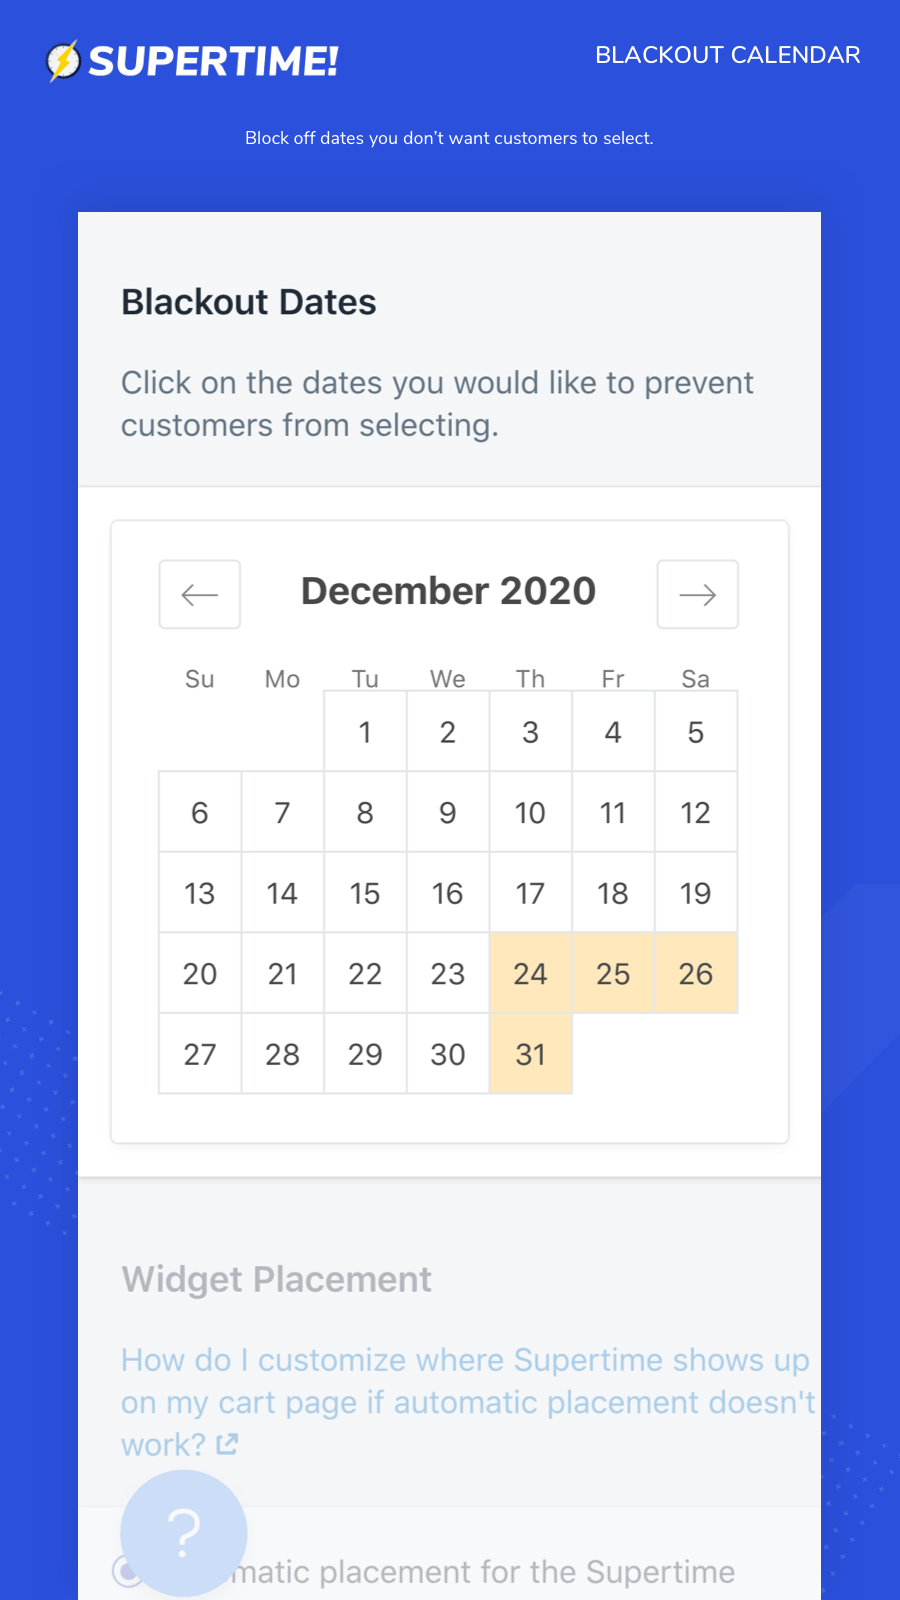 Block off dates you don't want customers to select.